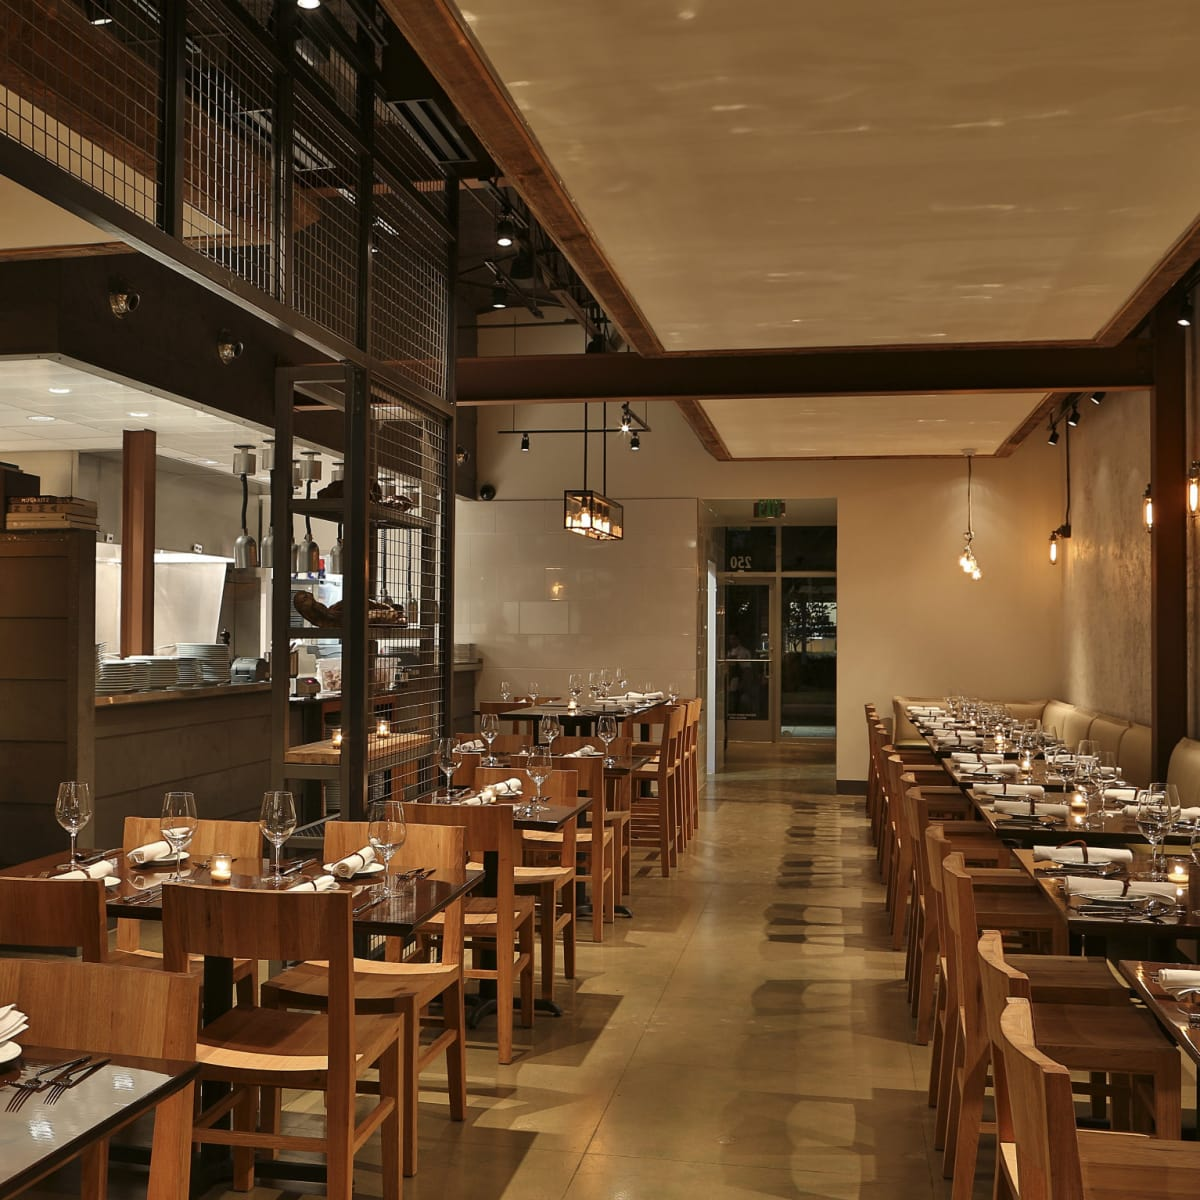 FT33 restaurant in the Dallas Design District